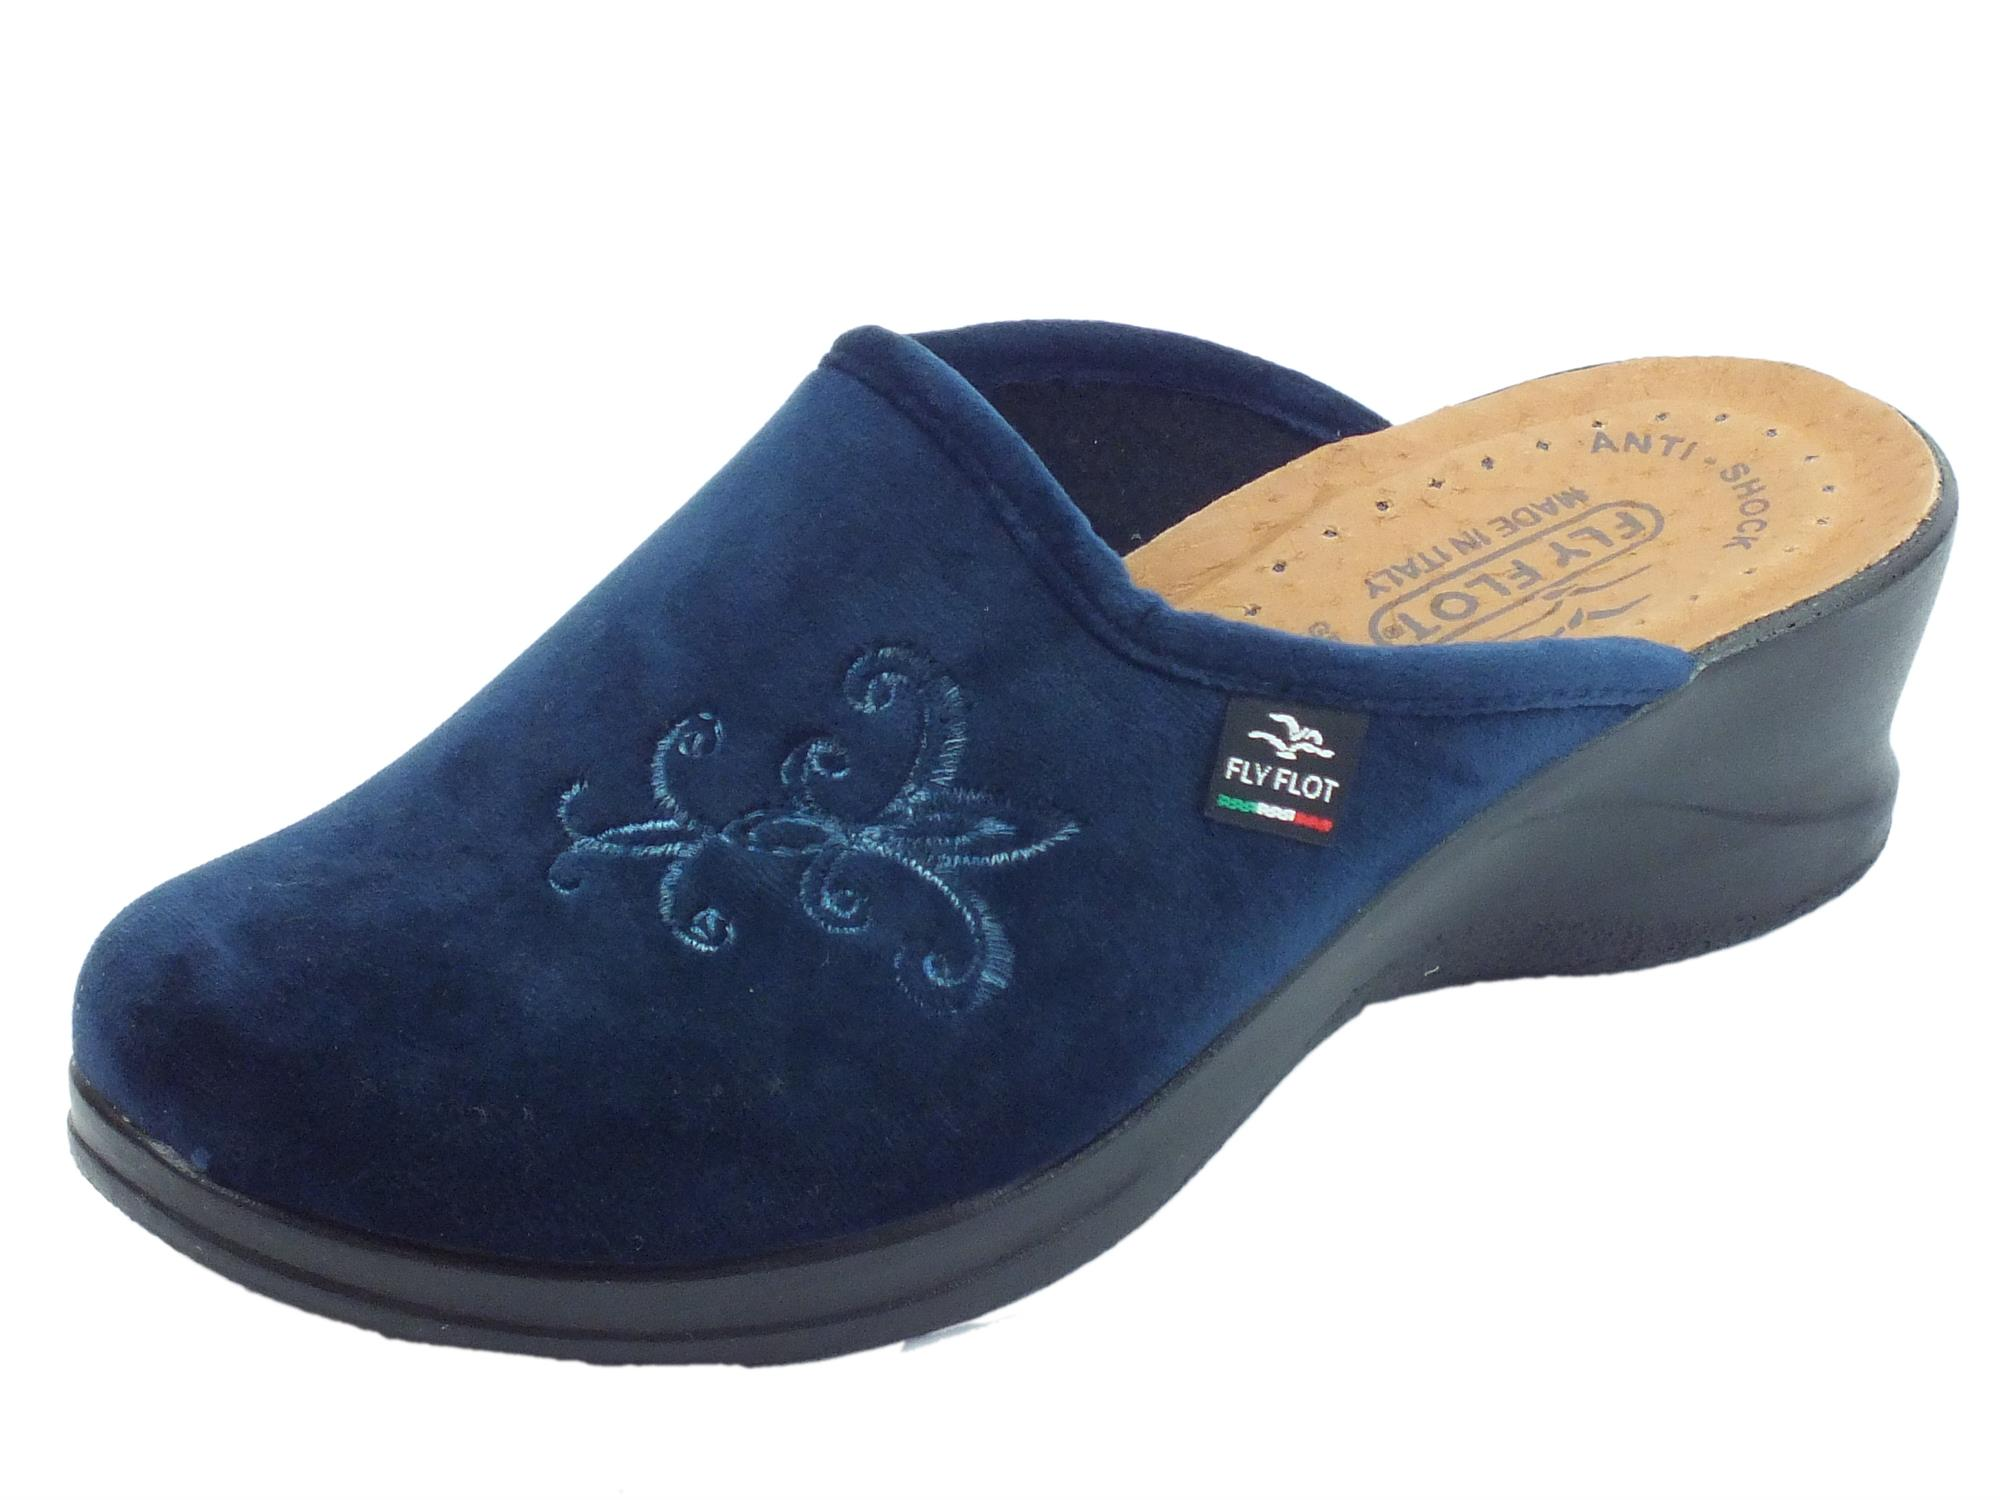 Pantofole FlyFlot per donna in tessuto pile blu sottopiede in pelle  anti-shock b7b50c08910